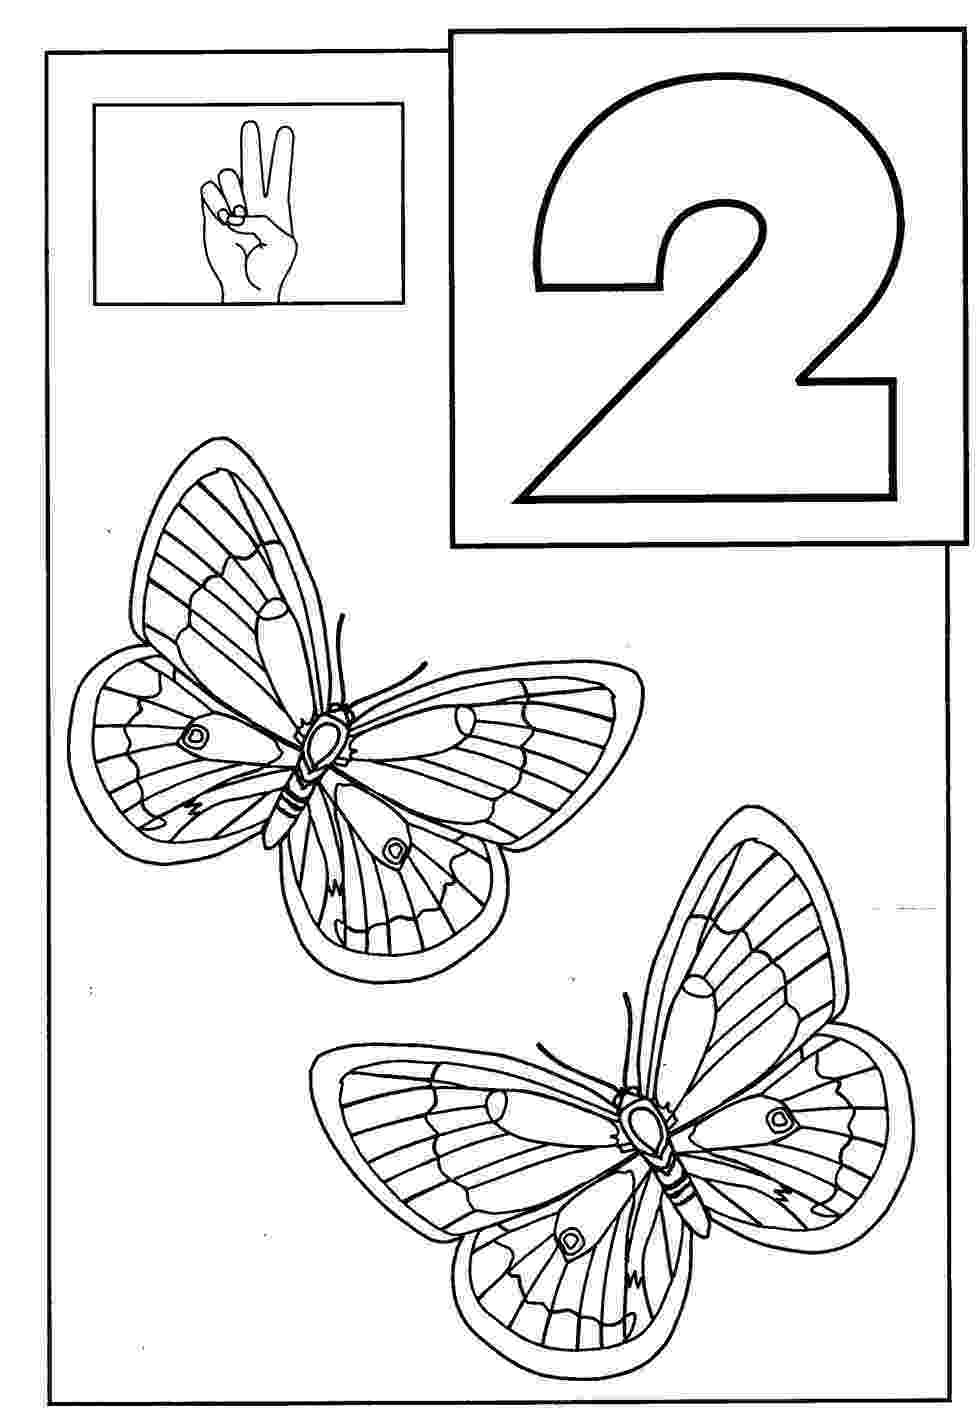 coloring picture numbers fileclassic alphabet numbers chart at coloring pages for coloring numbers picture